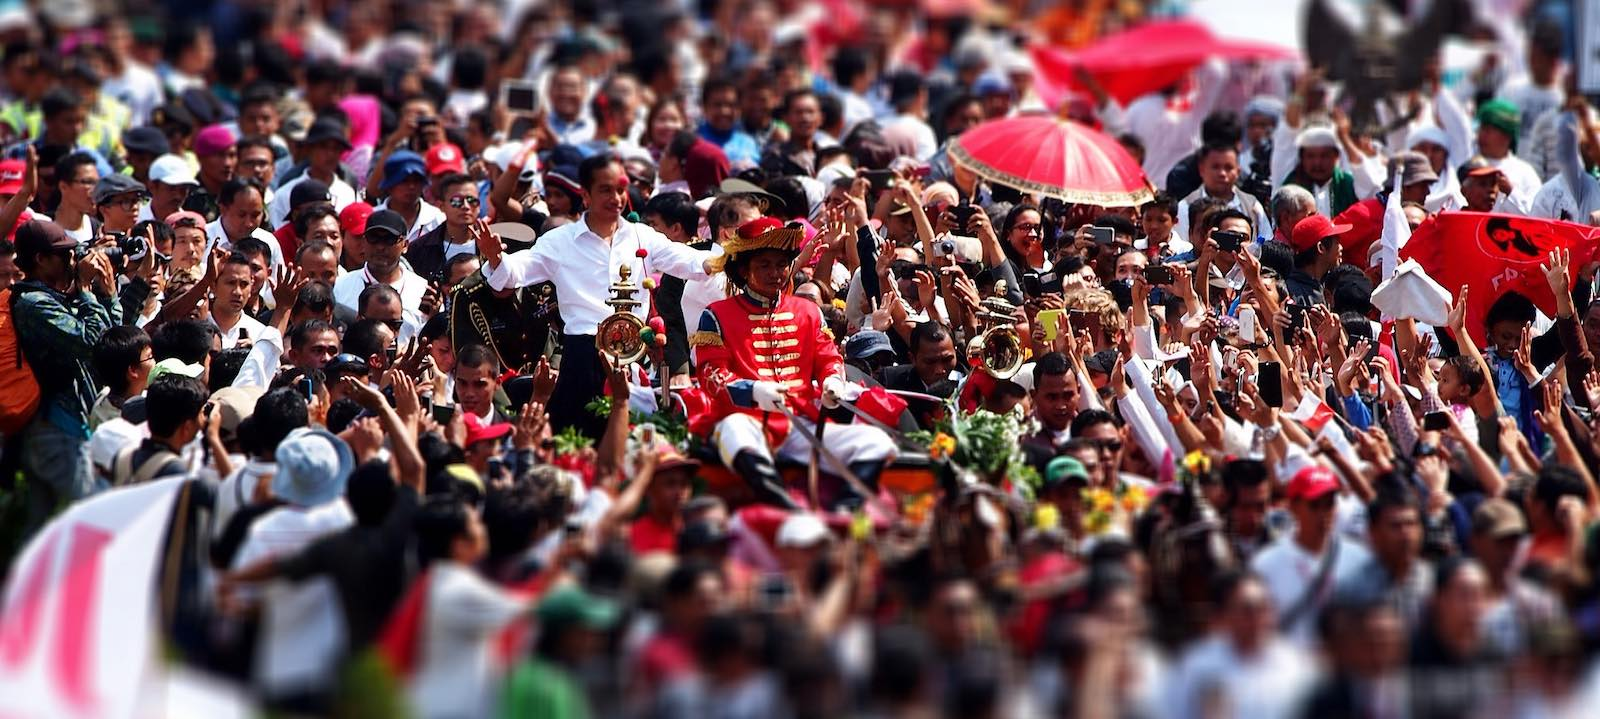 The 2014 inauguration of Joko Widodo (Photo: Kreshna Aditya 2012/Flickr)